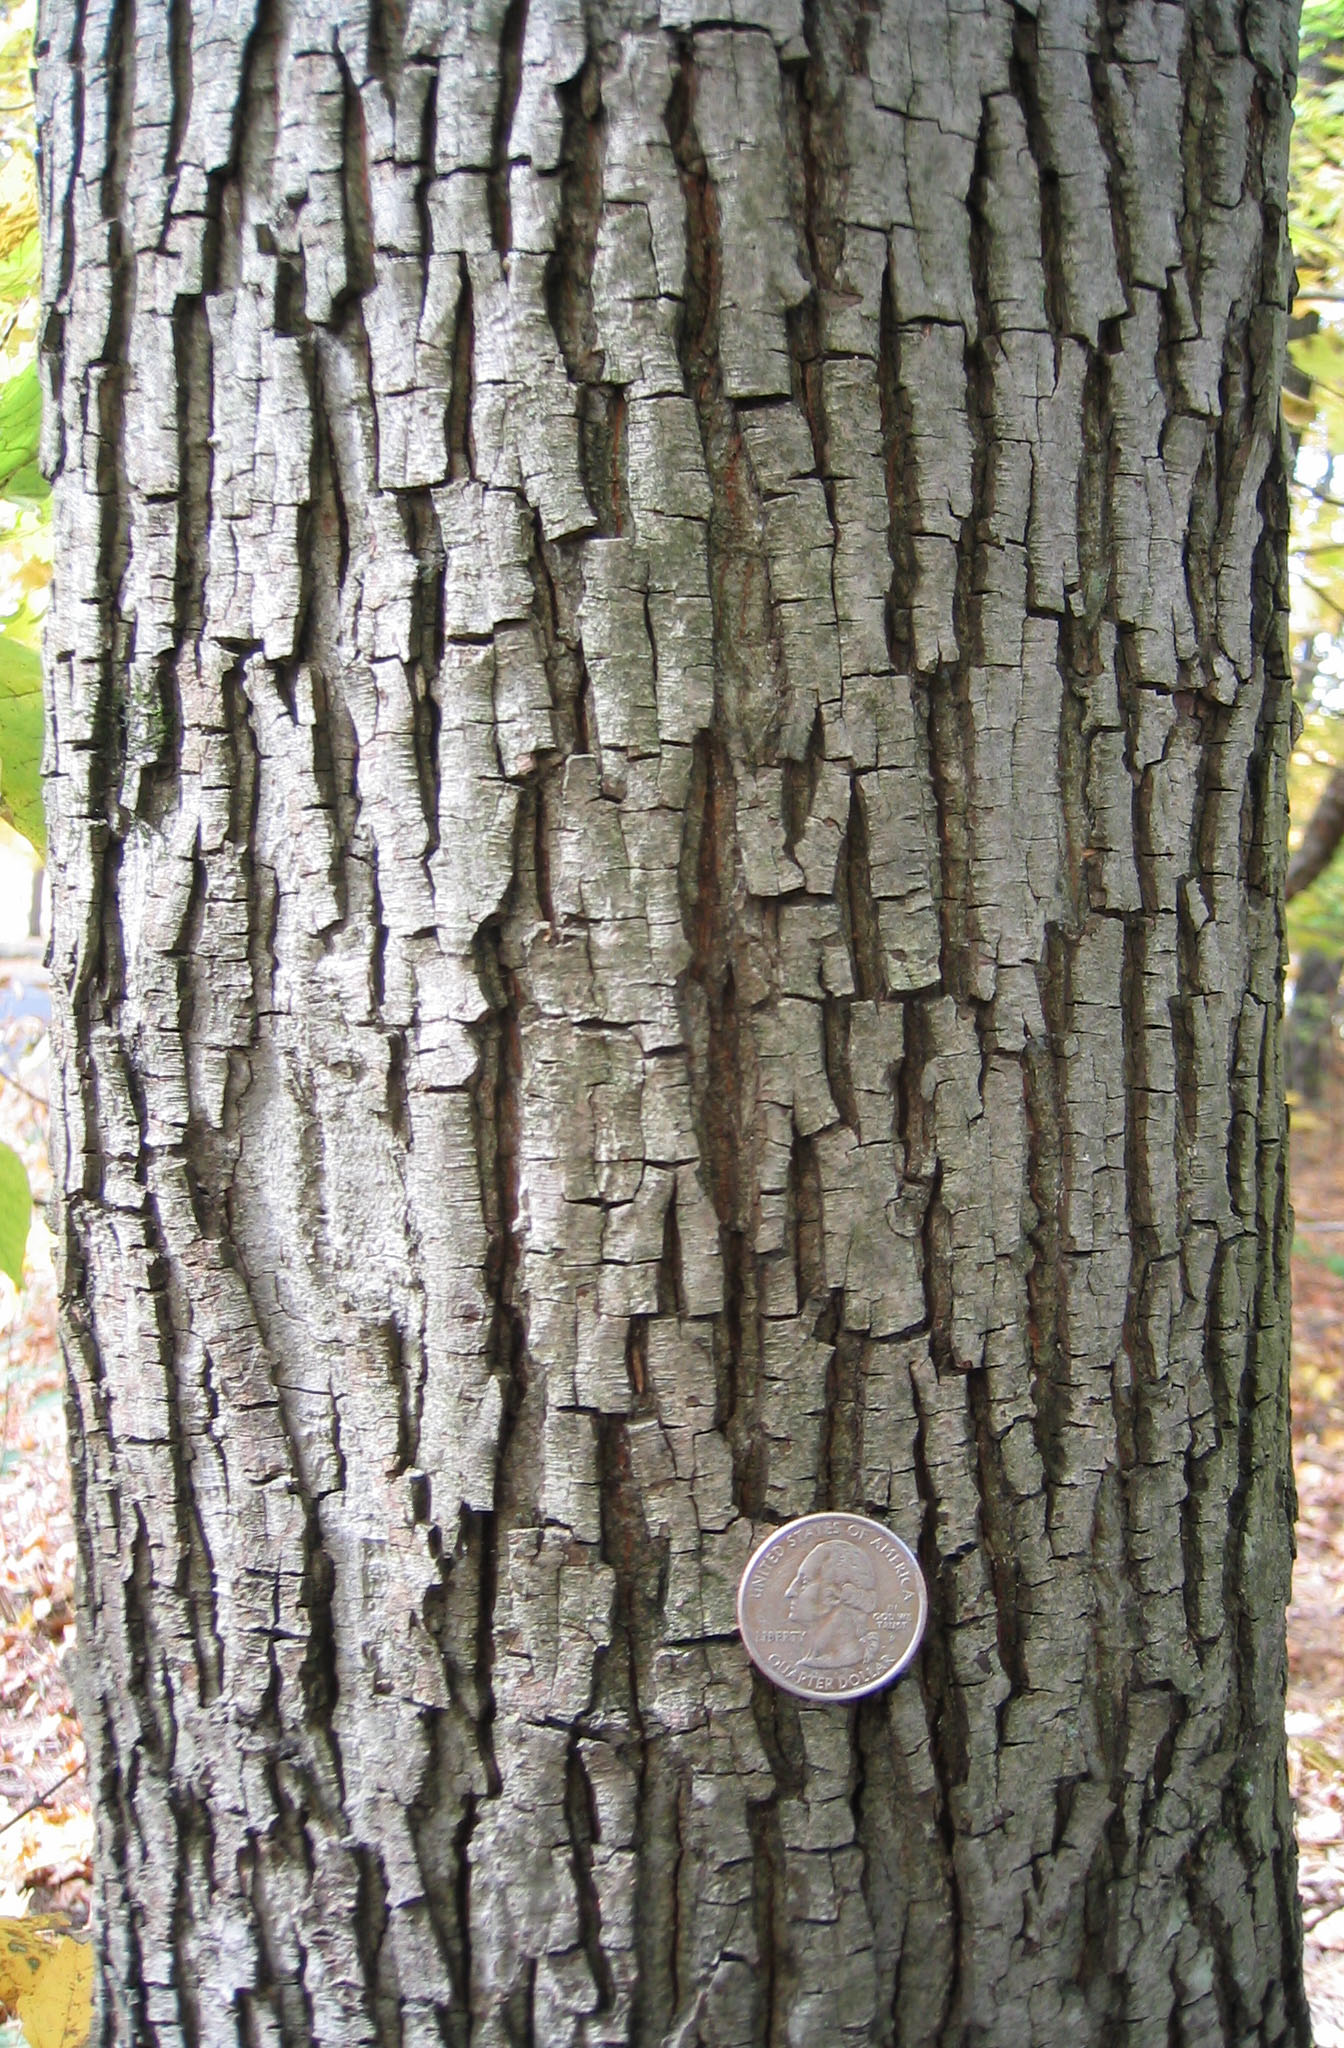 Michael Wojtech_Know Your Trees_pignut hickory